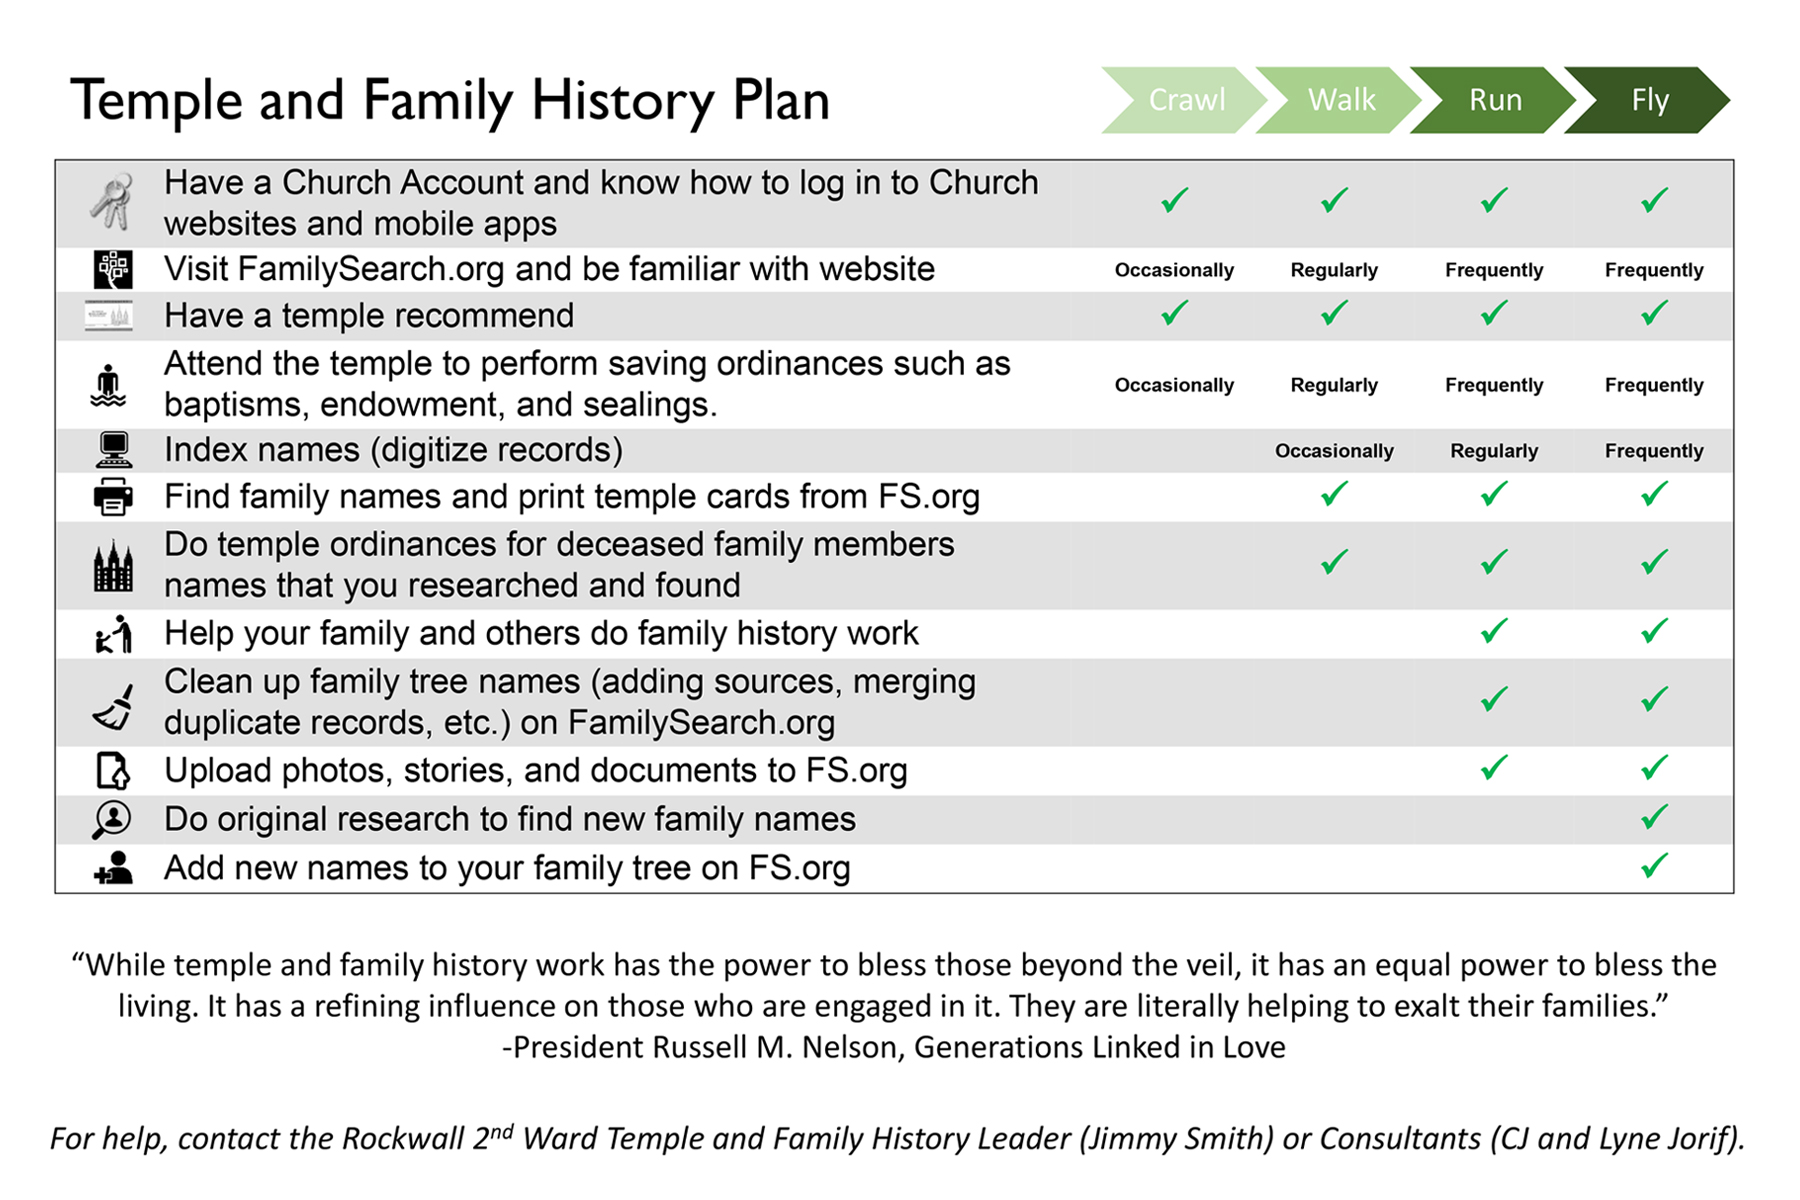 Temple and Family History Plan - Rockwall 2nd Ward